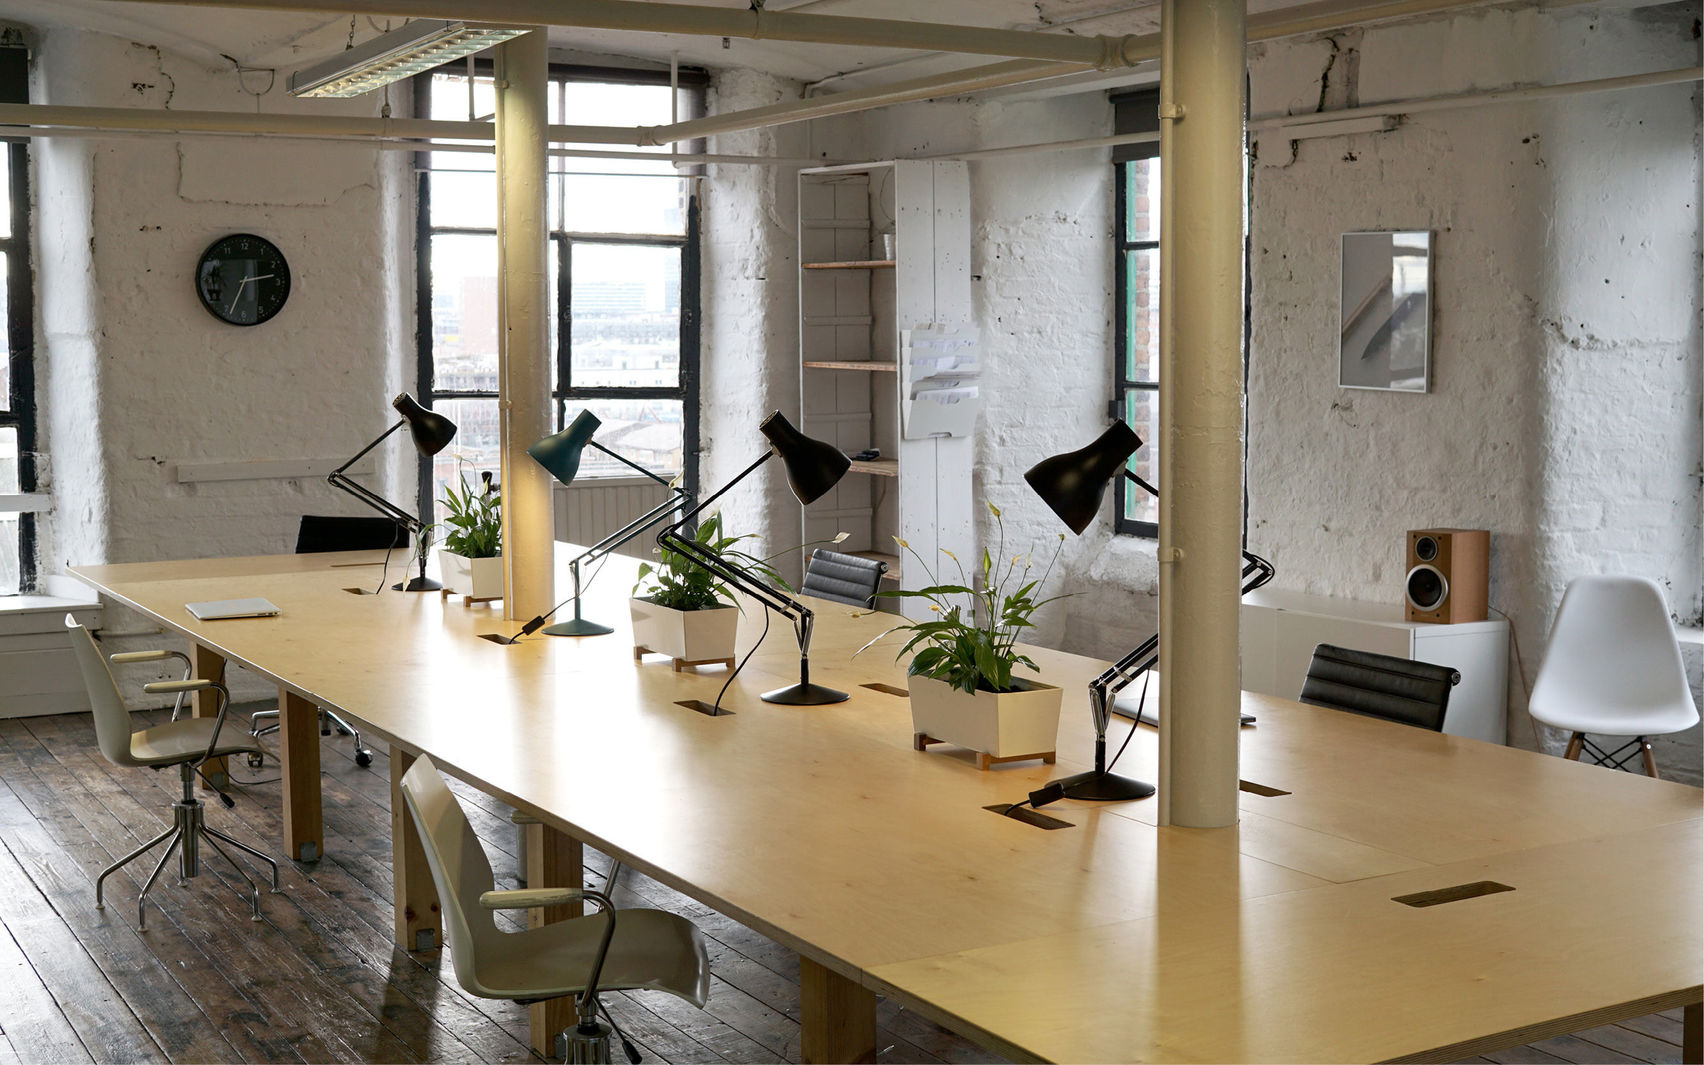 Industrial meeting room with large wooden table, shelving and shrubbery on the table with long windows